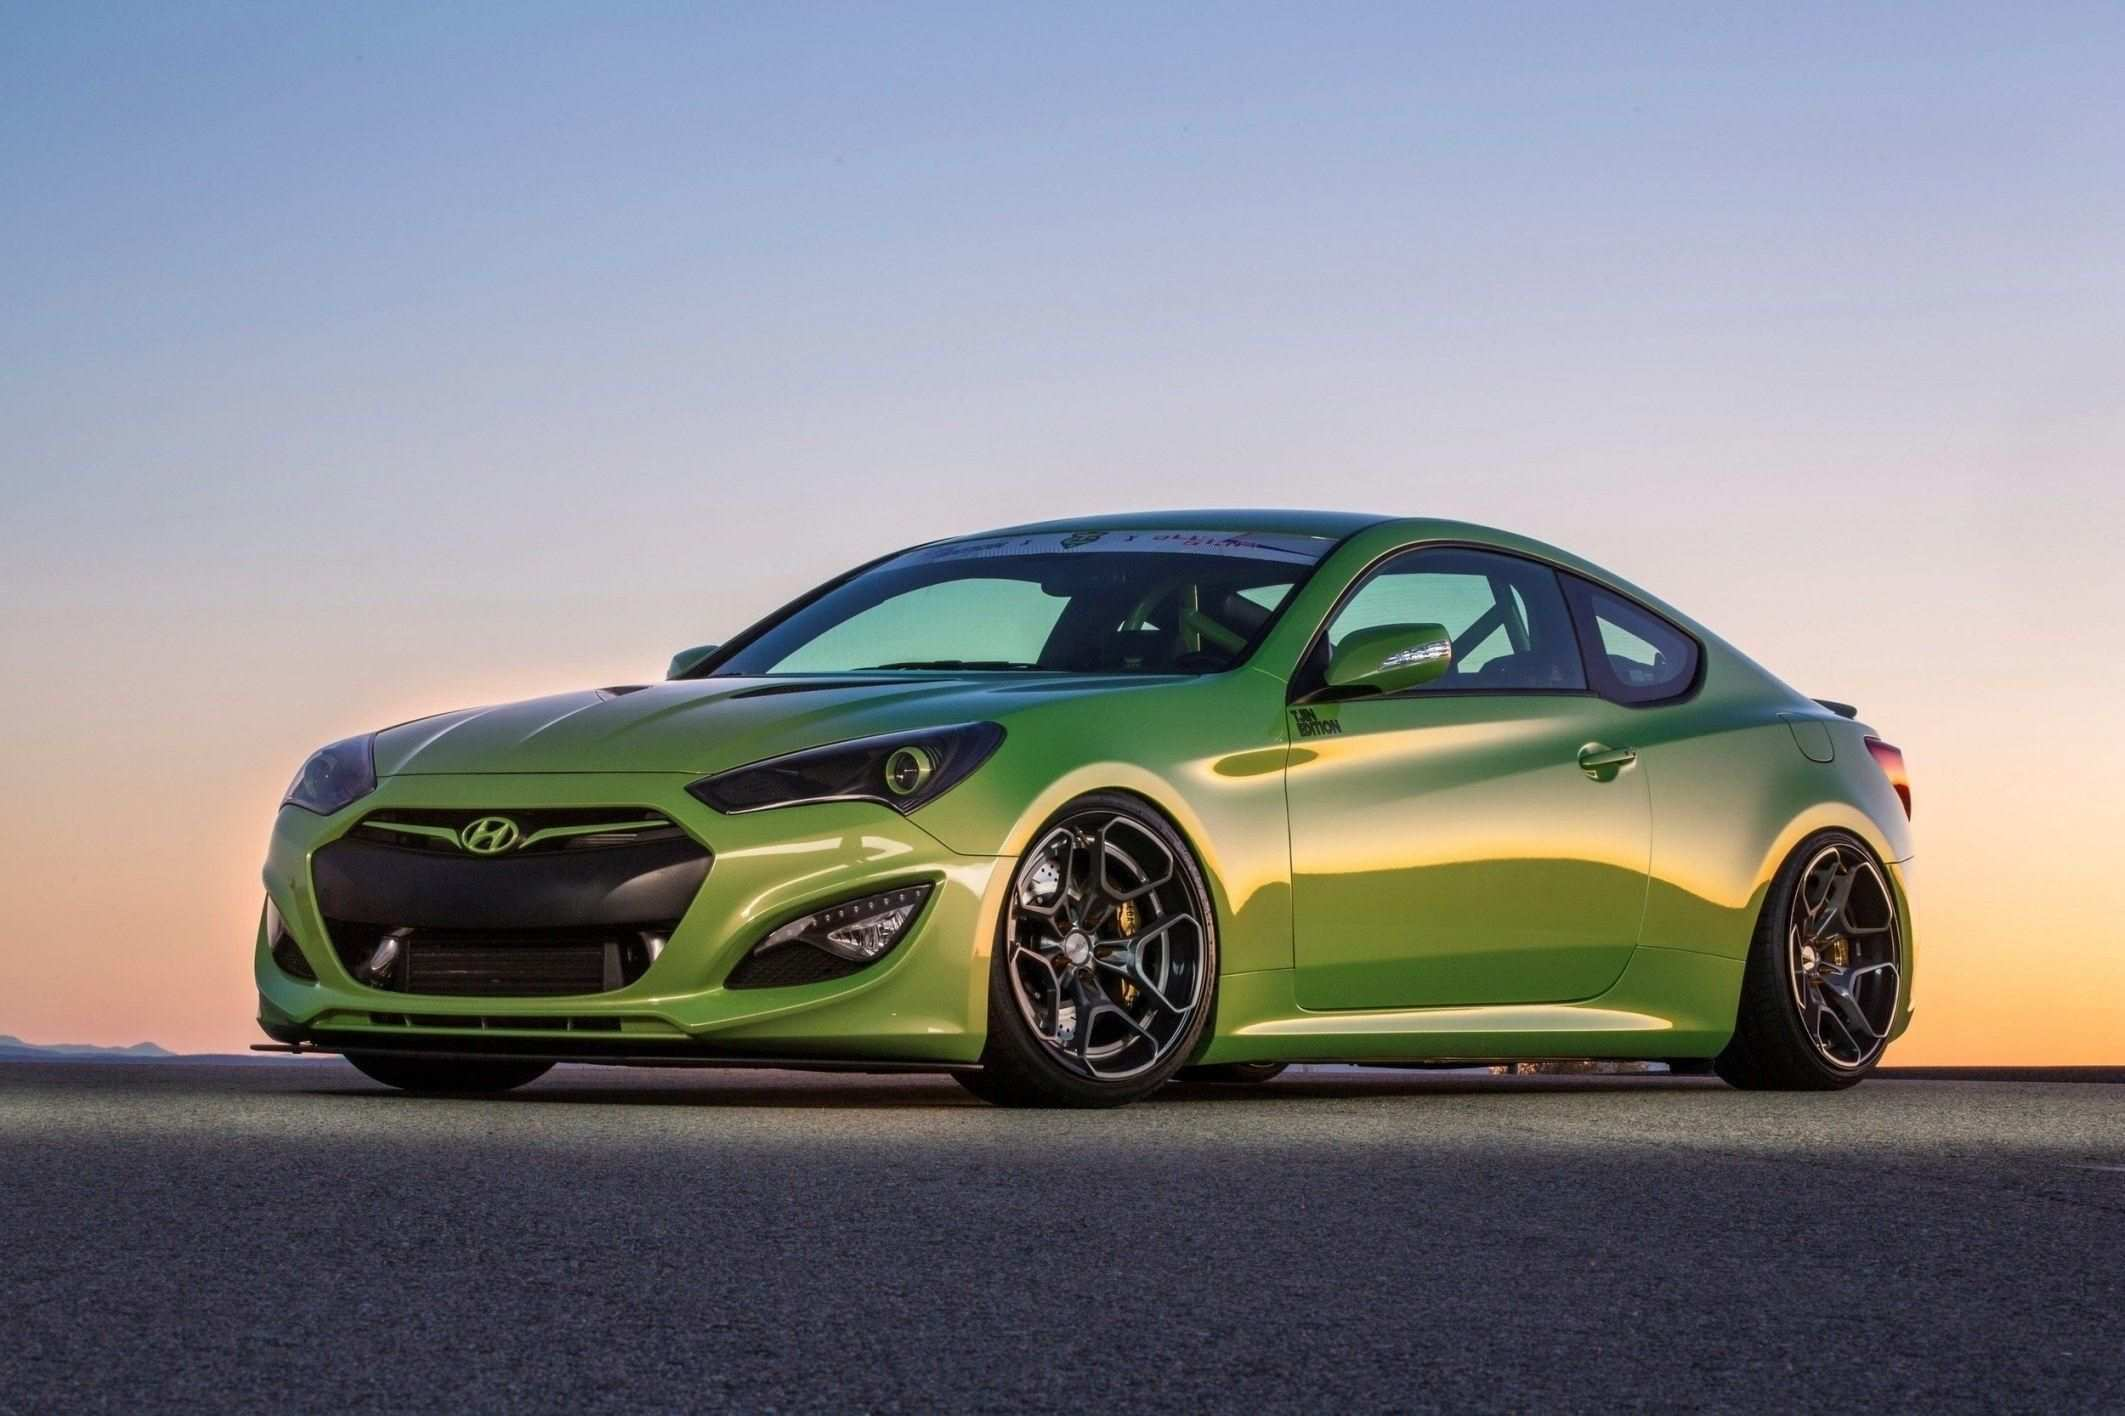 90 Best 2019 Hyundai Genesis Coupe Pictures